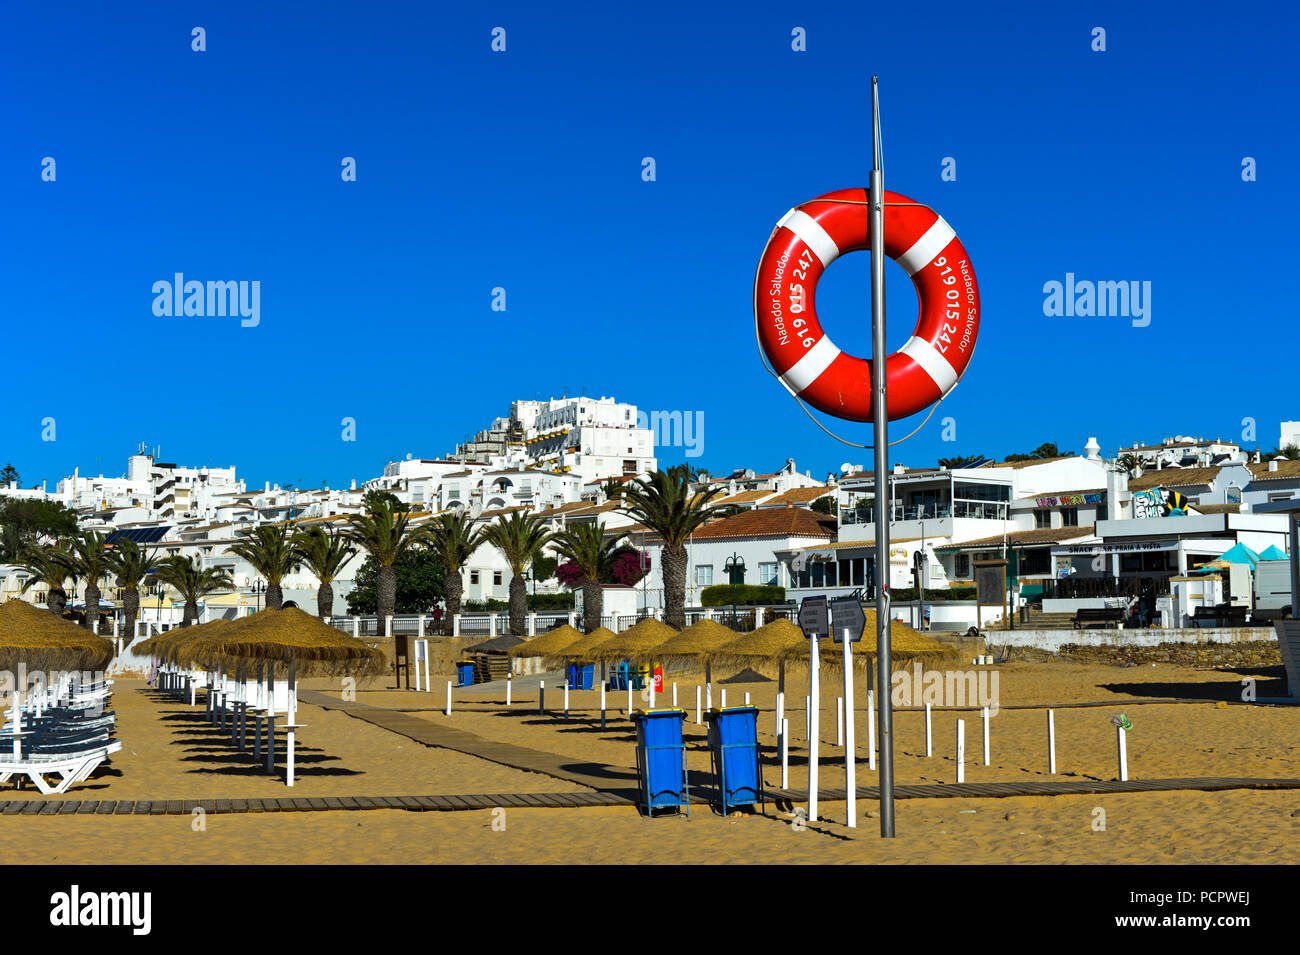 Rescue buoy at the ebach, Praia da Luz, Luz, Algarve, Portugal - Stock Image